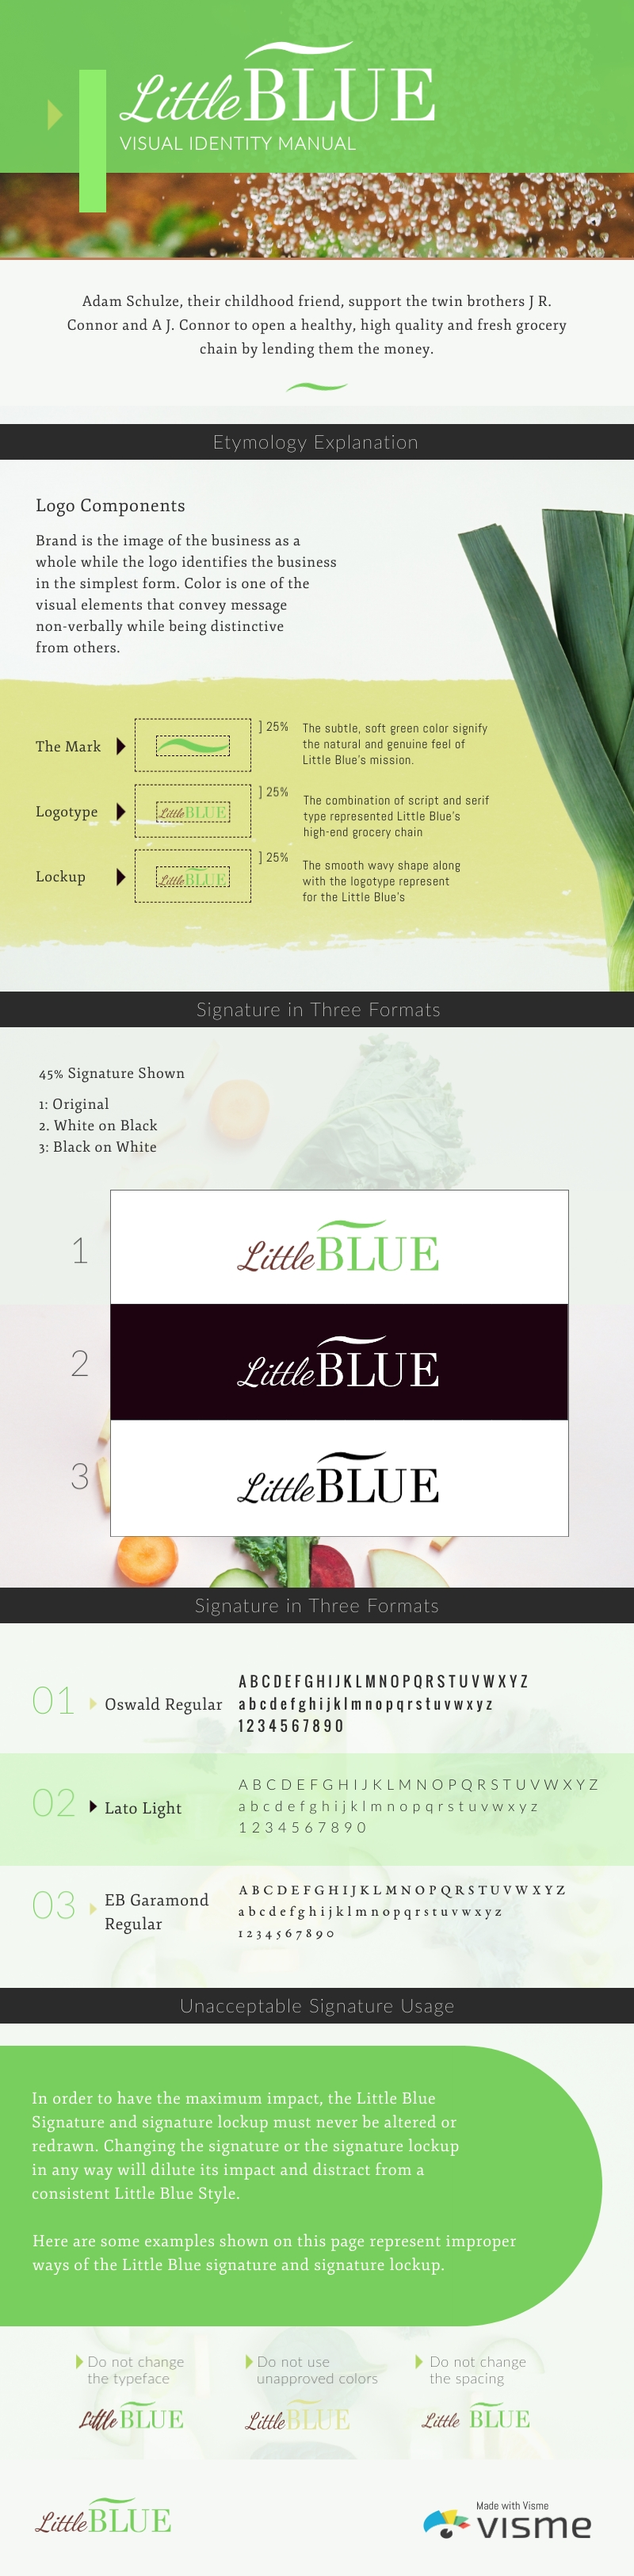 Health Food Company Brand Guidelines - Infographic Template